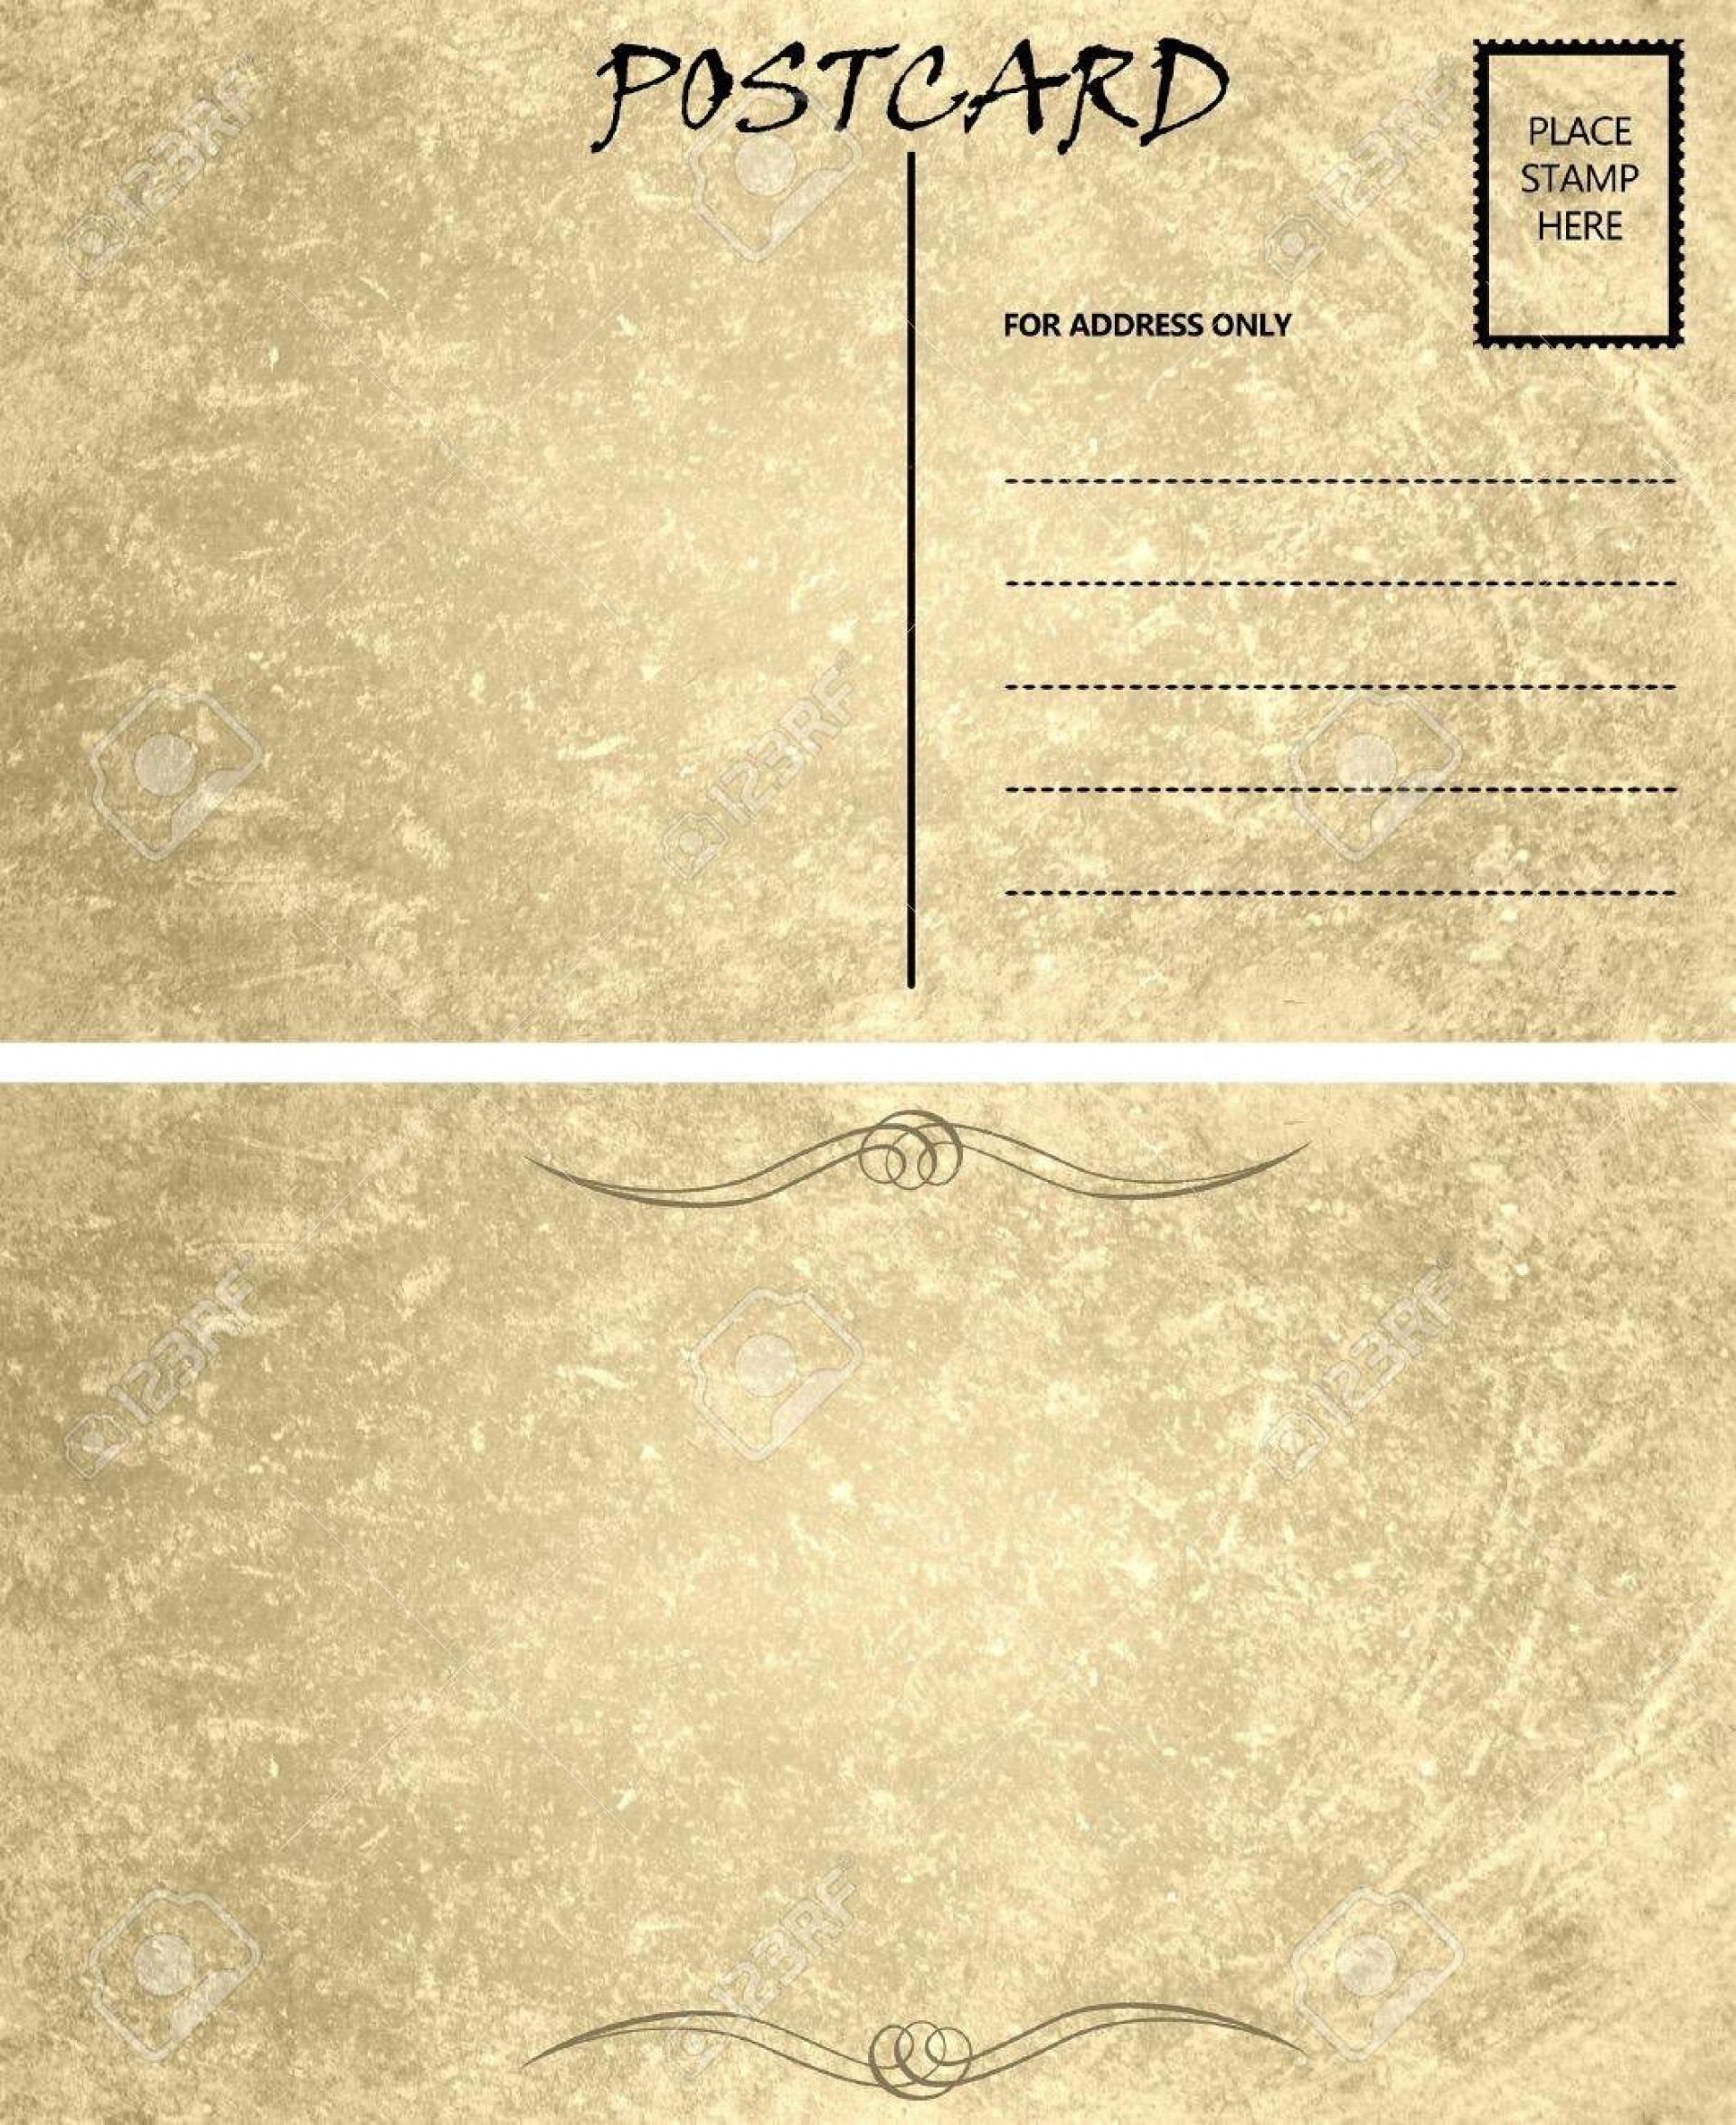 006 Wondrou Postcard Front And Back Template Free Image  To School1920